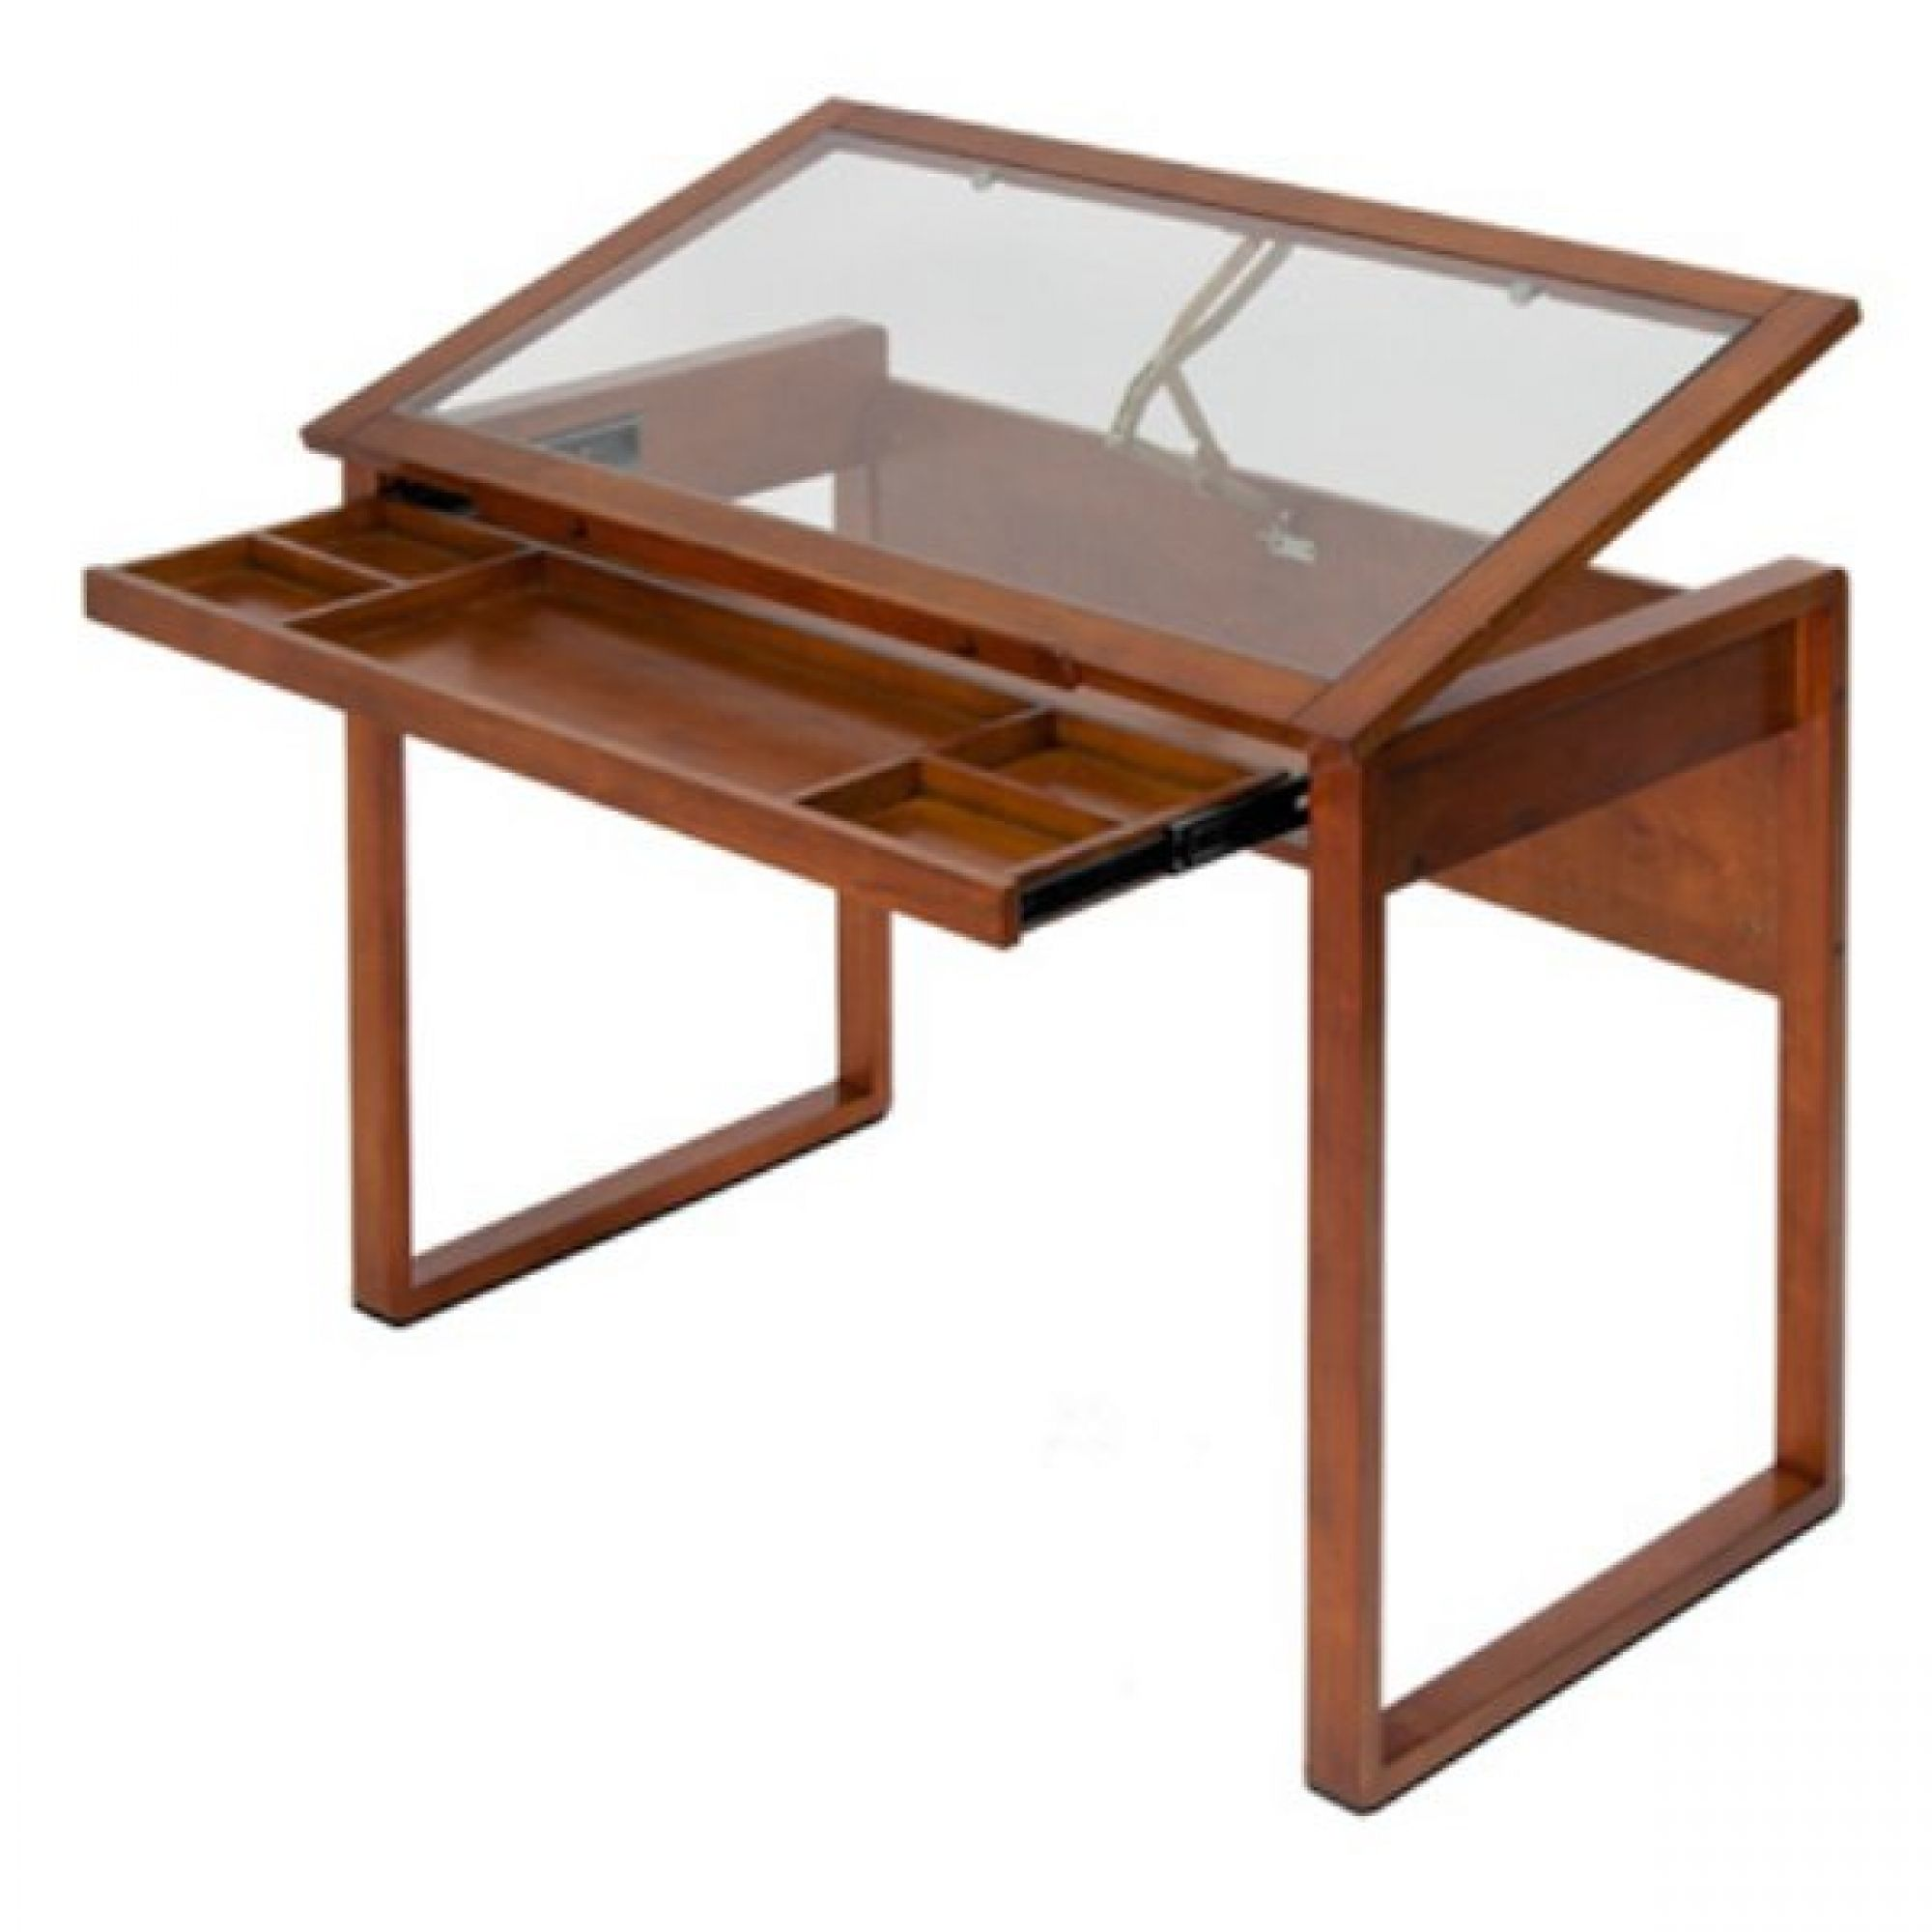 co sold retrocraft british table product drawing thornton collection design items vintage desk